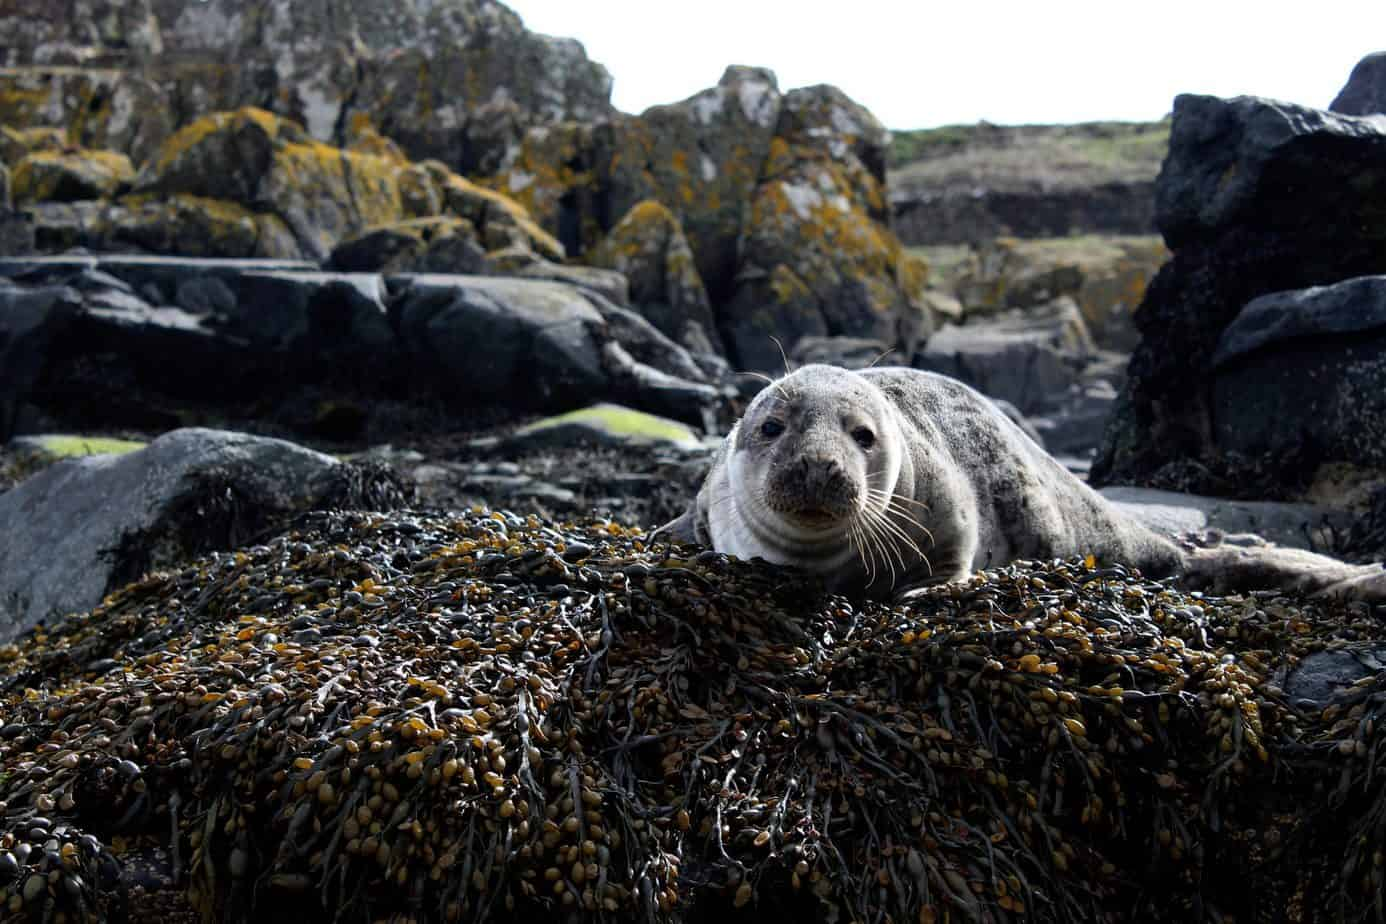 Eco SUP tours see grey harbor seal on seaweed covered rock